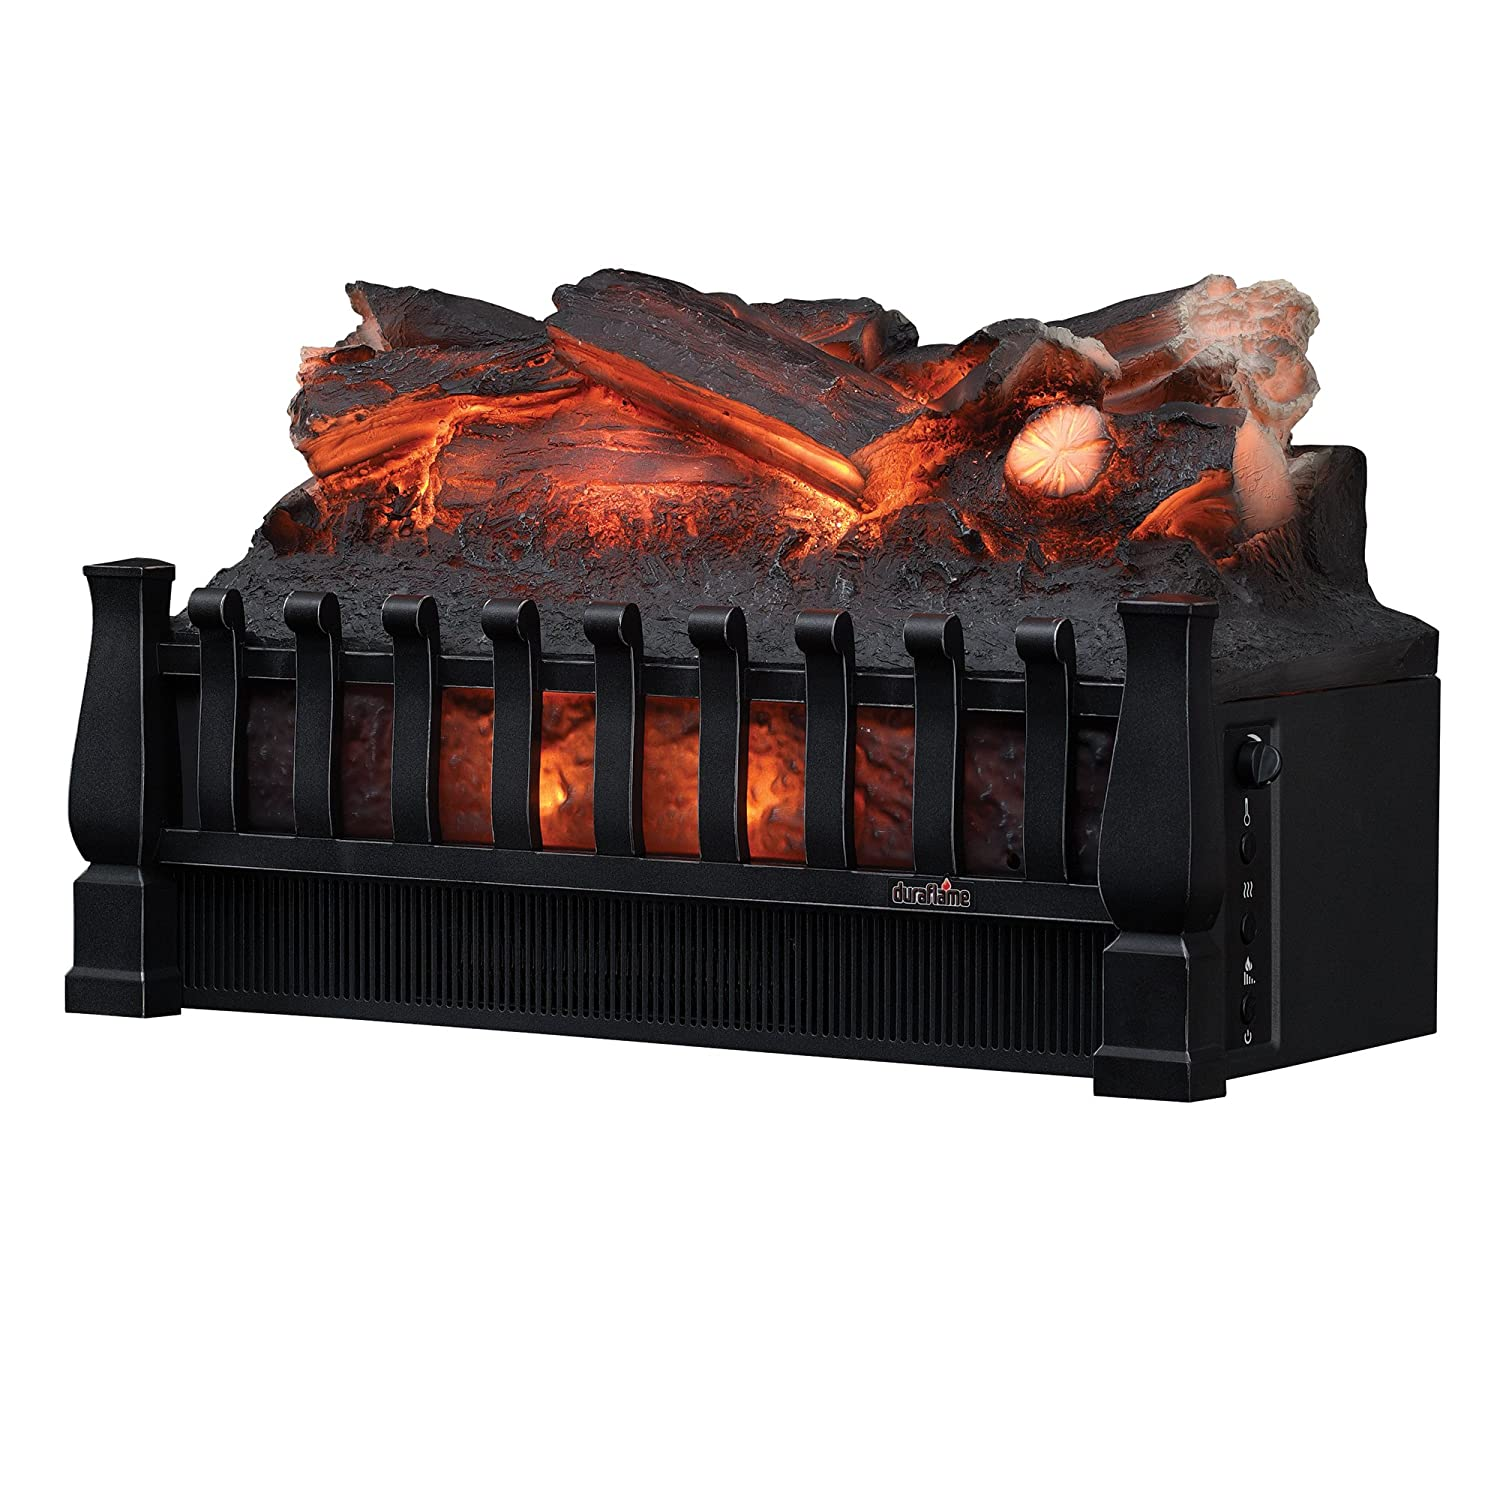 Tremendous Duraflame Dfi021Aru Electric Log Set Heater With Realistic Ember Bed Black Best Image Libraries Sapebelowcountryjoecom